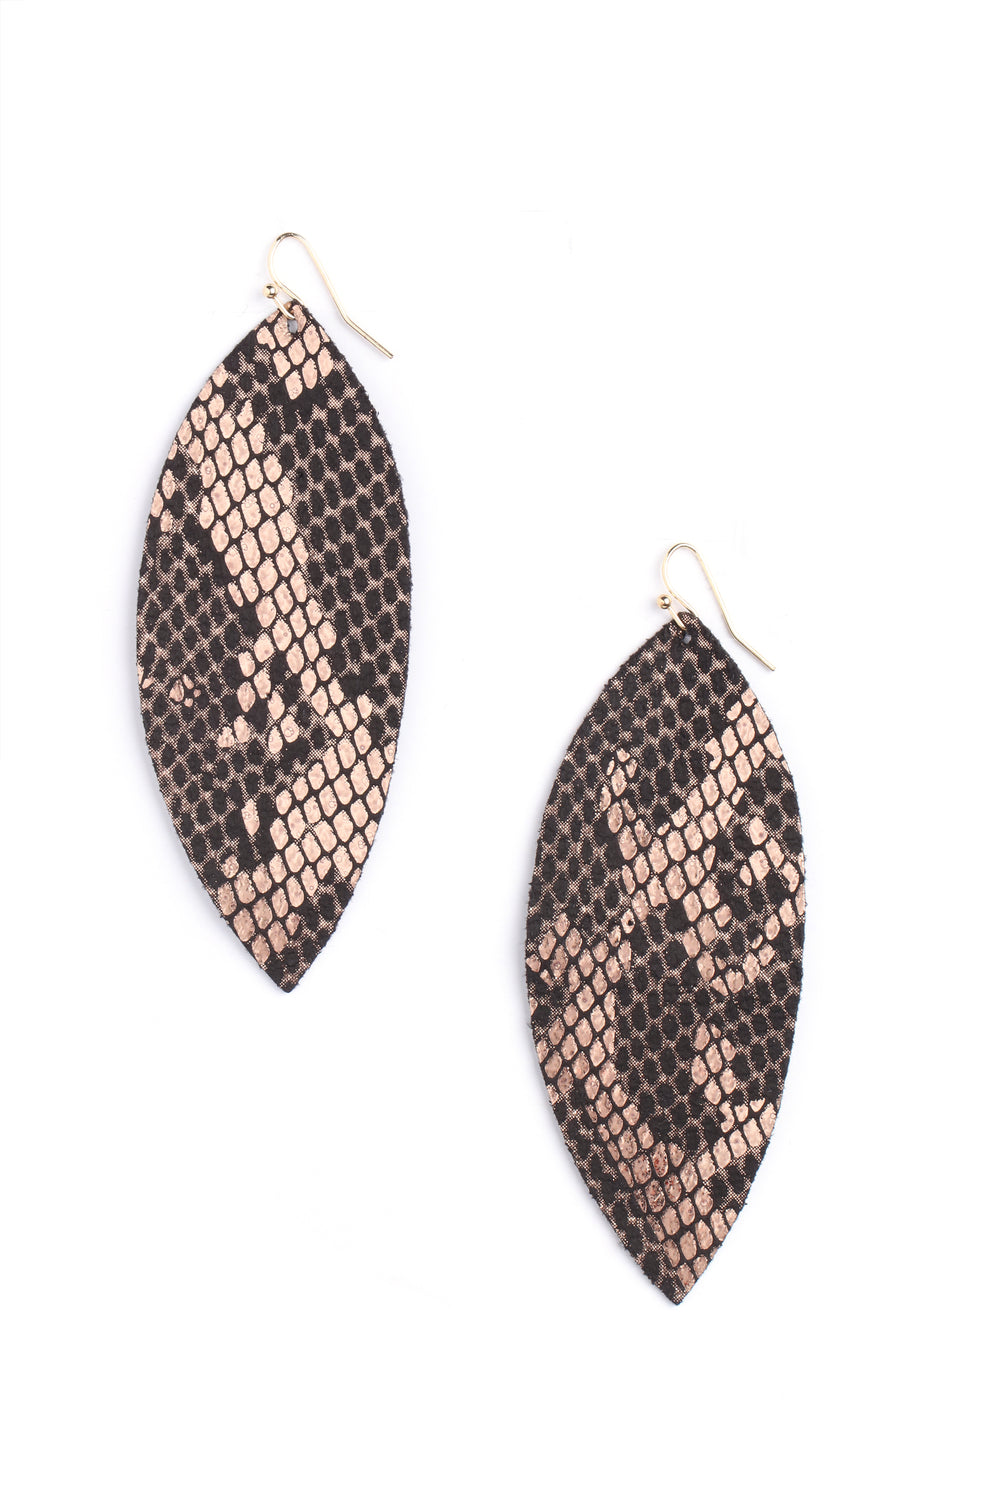 Slither Your Way Earrings - Snake